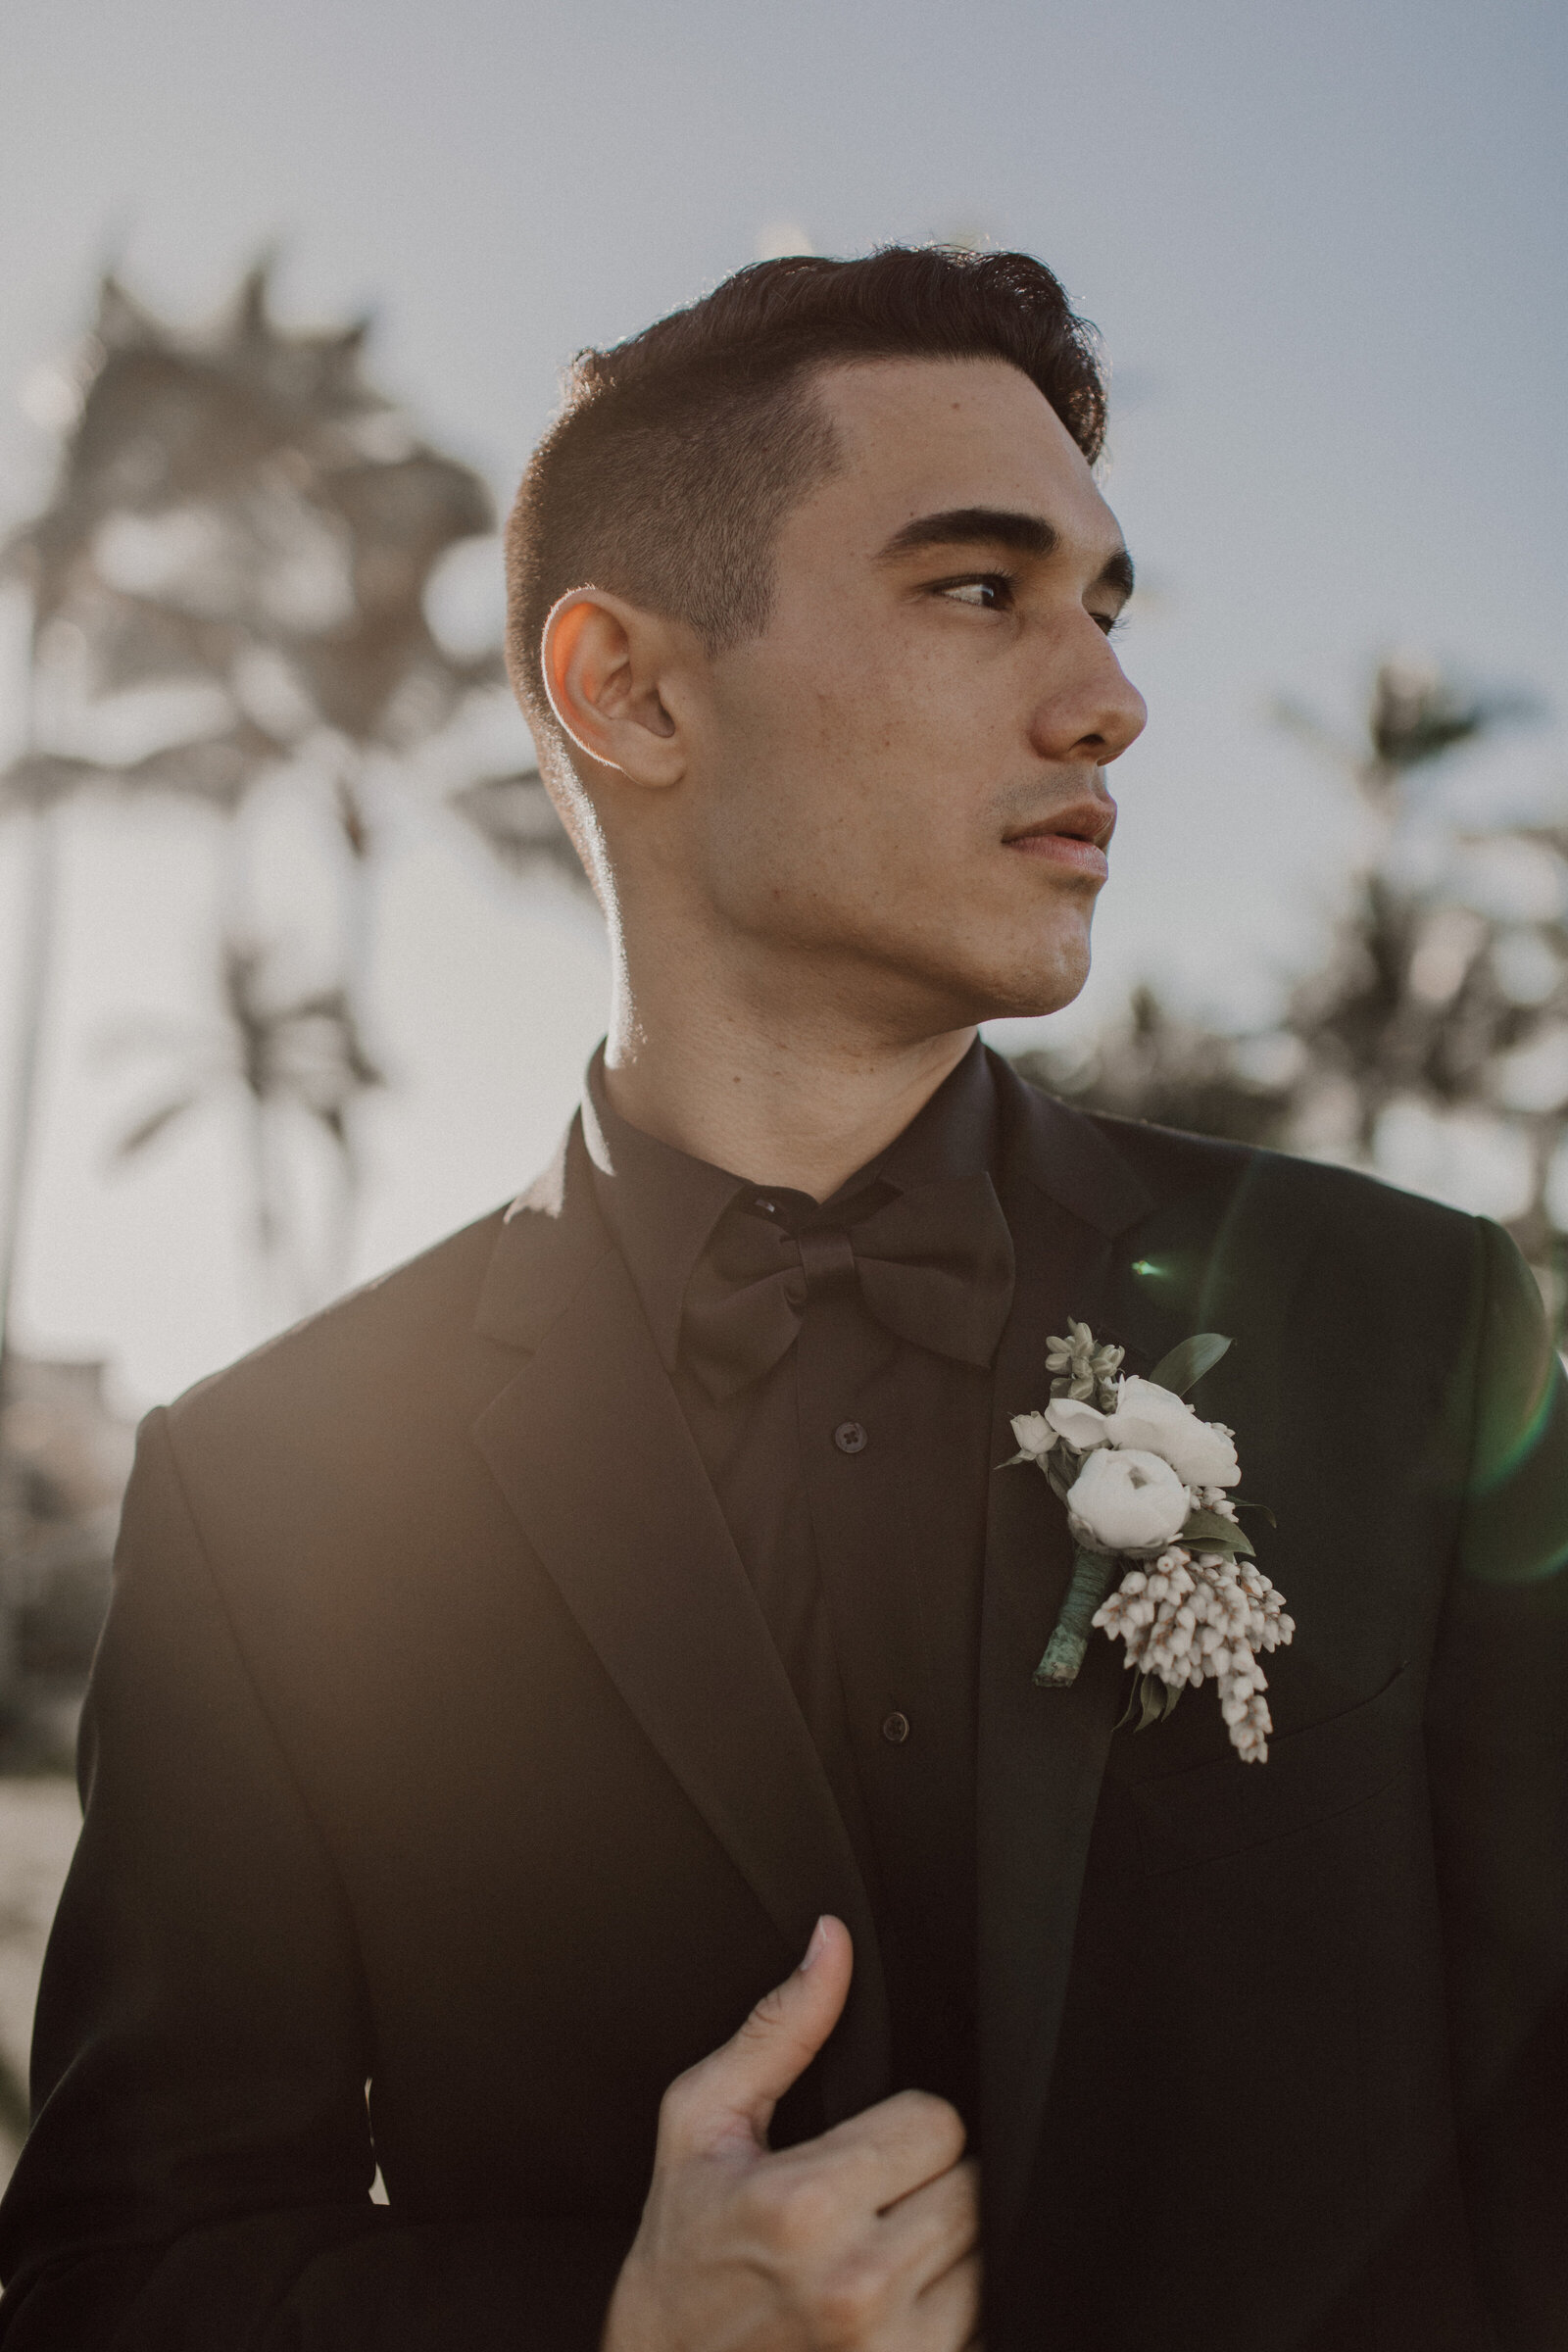 Groom-looking-into-the-distance-in-black-suit